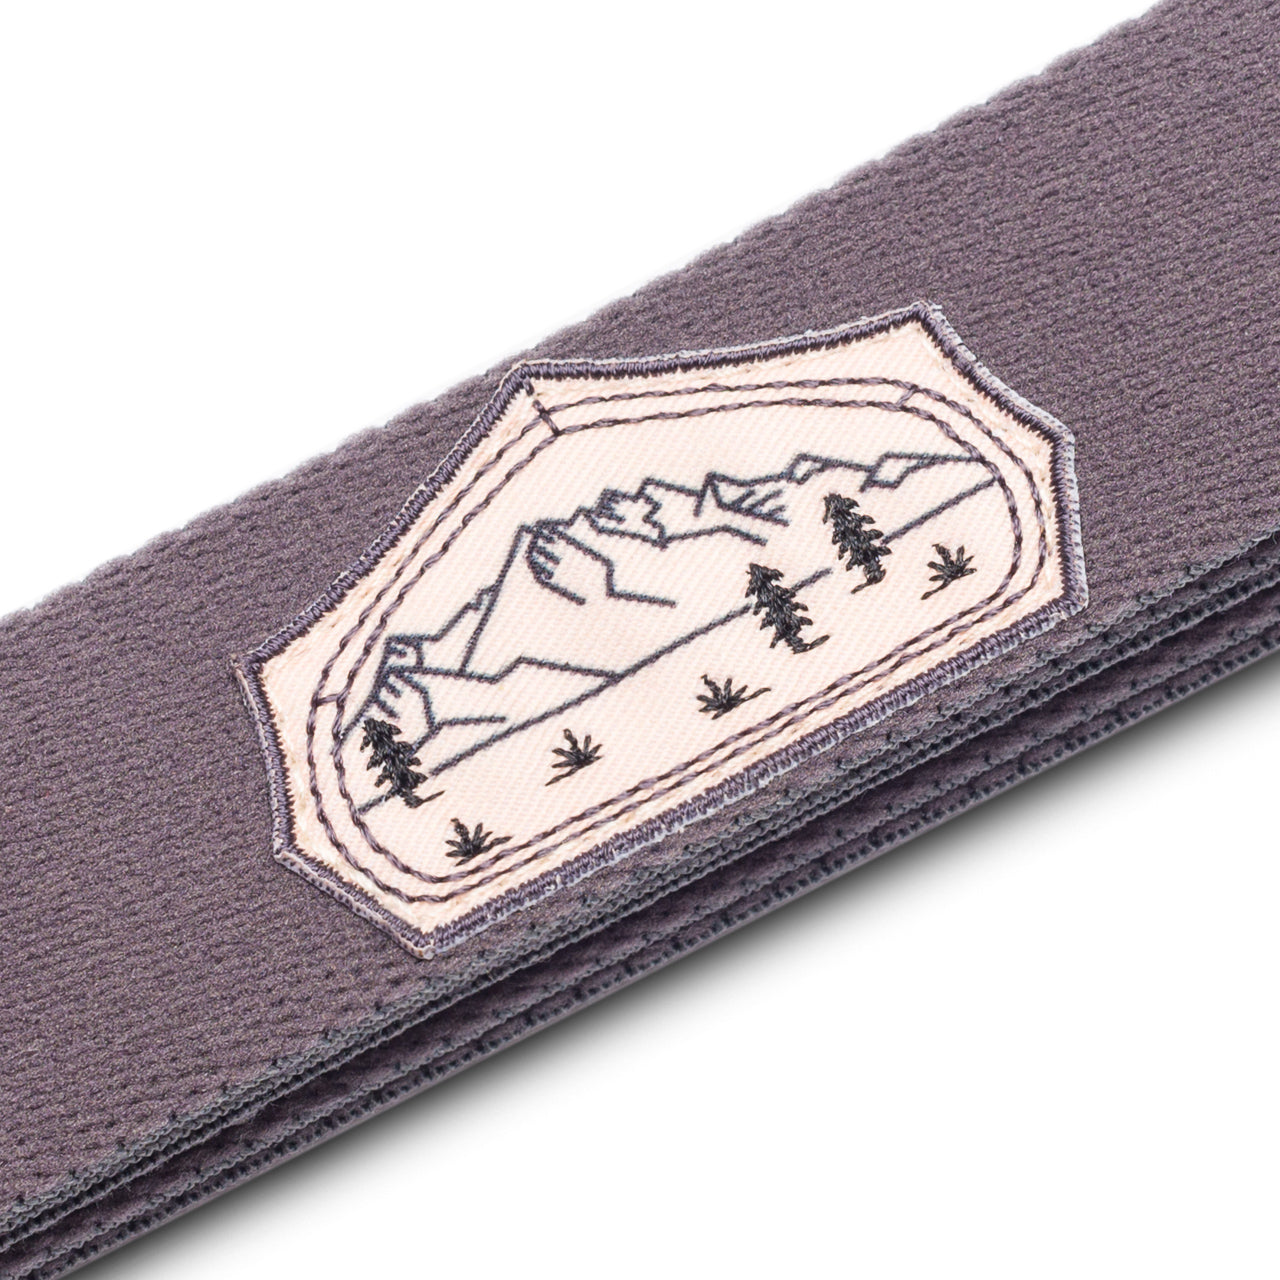 Arcade Belts Rambler Slim Purple